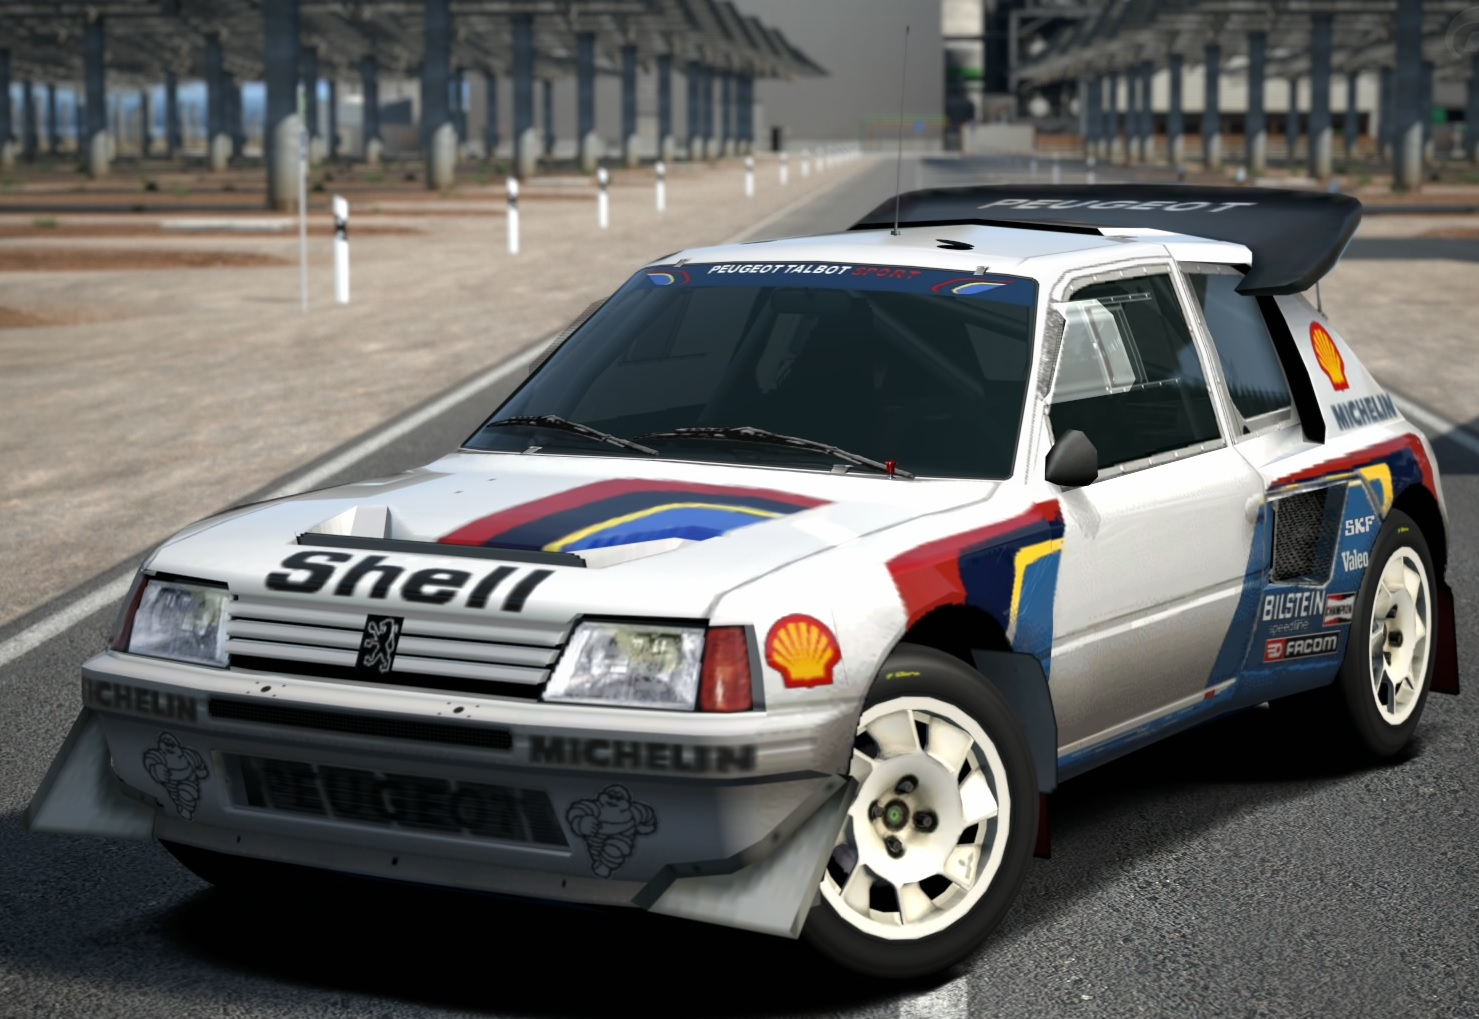 Honda Accord Sport >> Peugeot 205 Turbo 16 Evolution 2 Rally Car '86 | Gran Turismo Wiki | FANDOM powered by Wikia